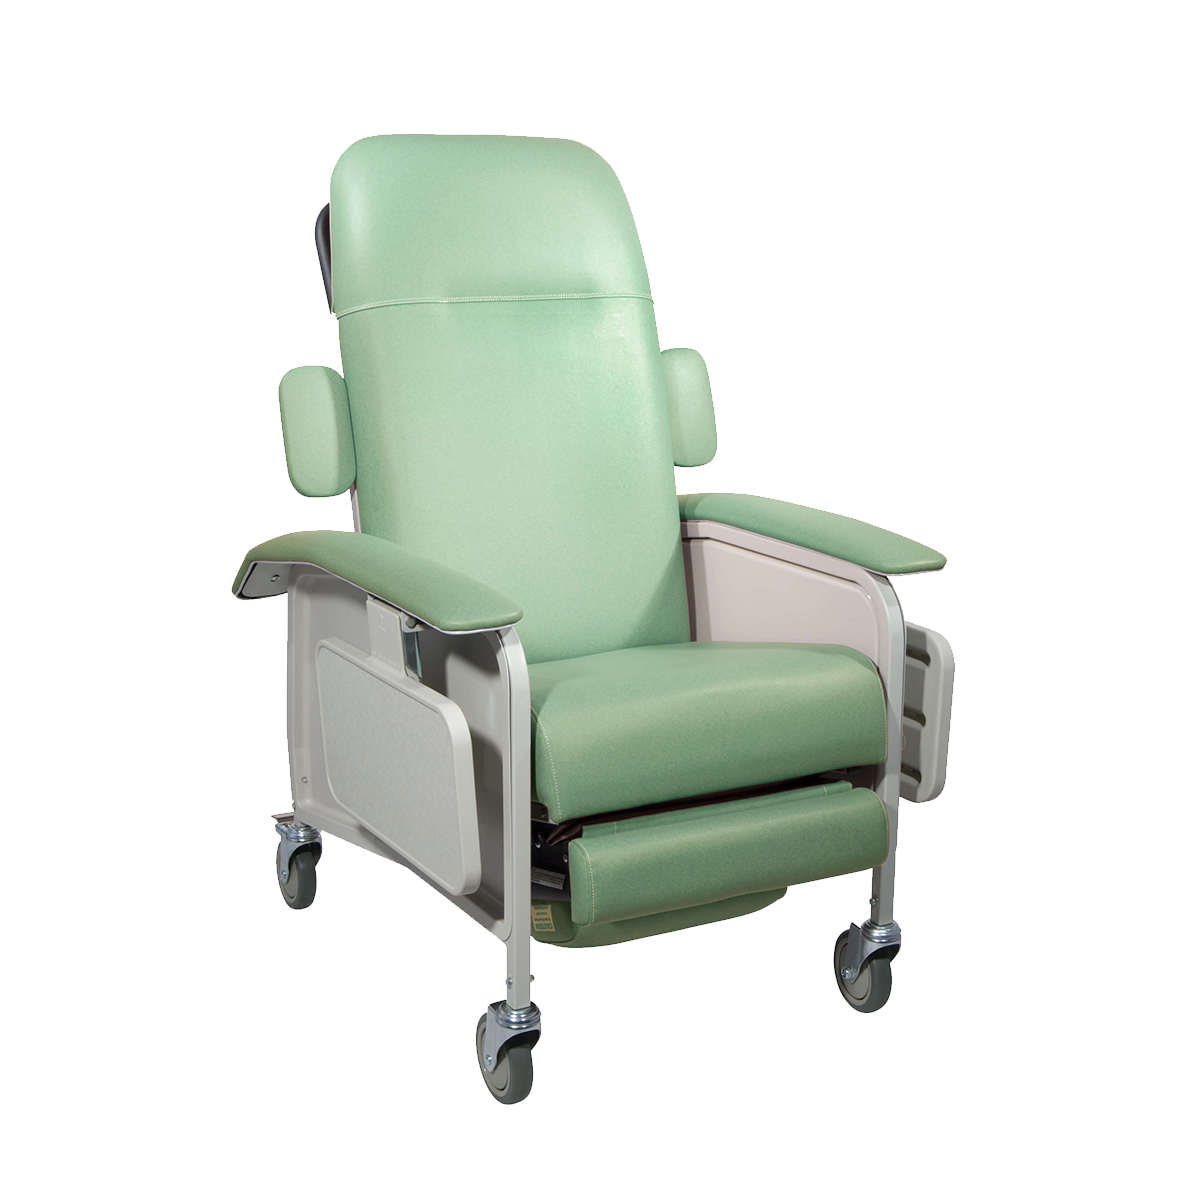 Chairs for Blood Sampling and Dialysis